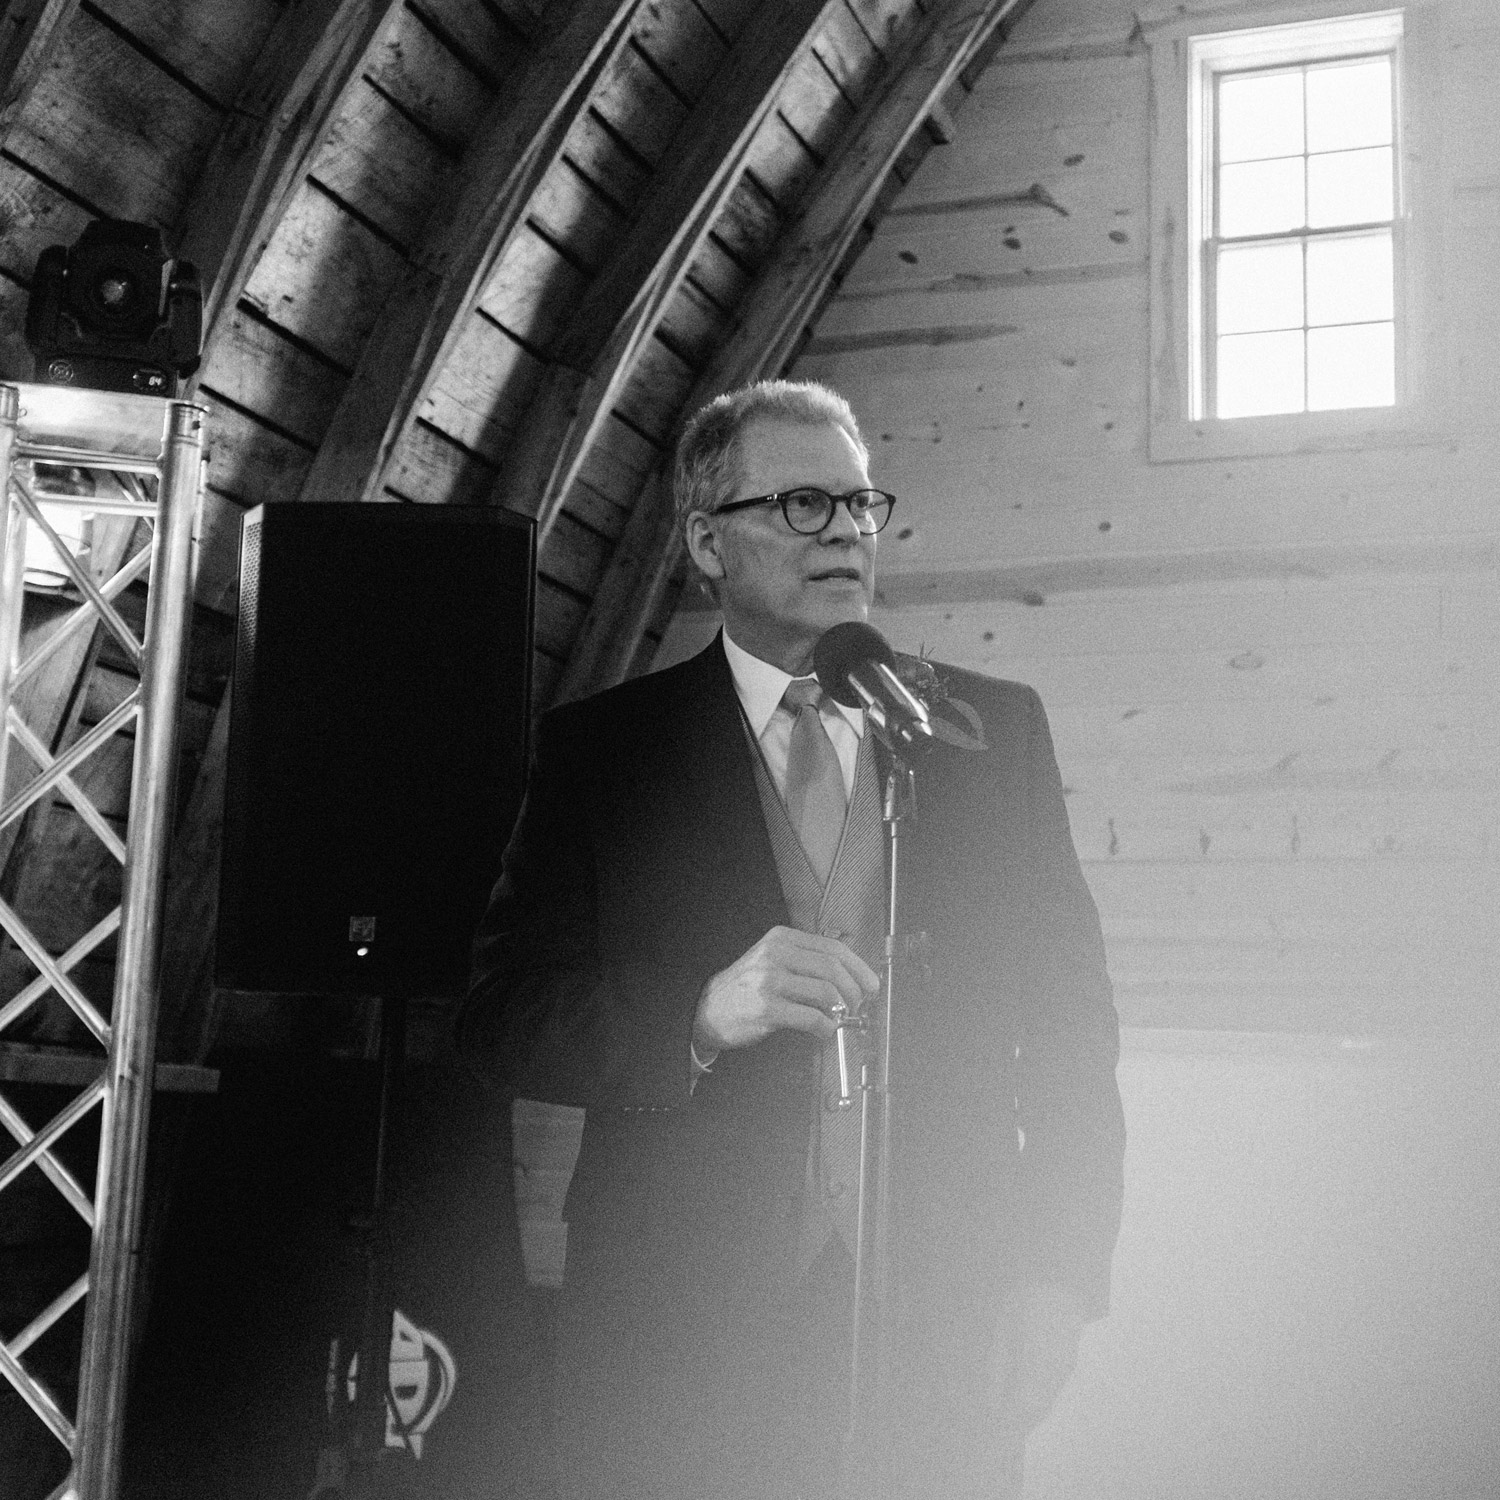 Father of the bride gives speech during reception at rustic oaks